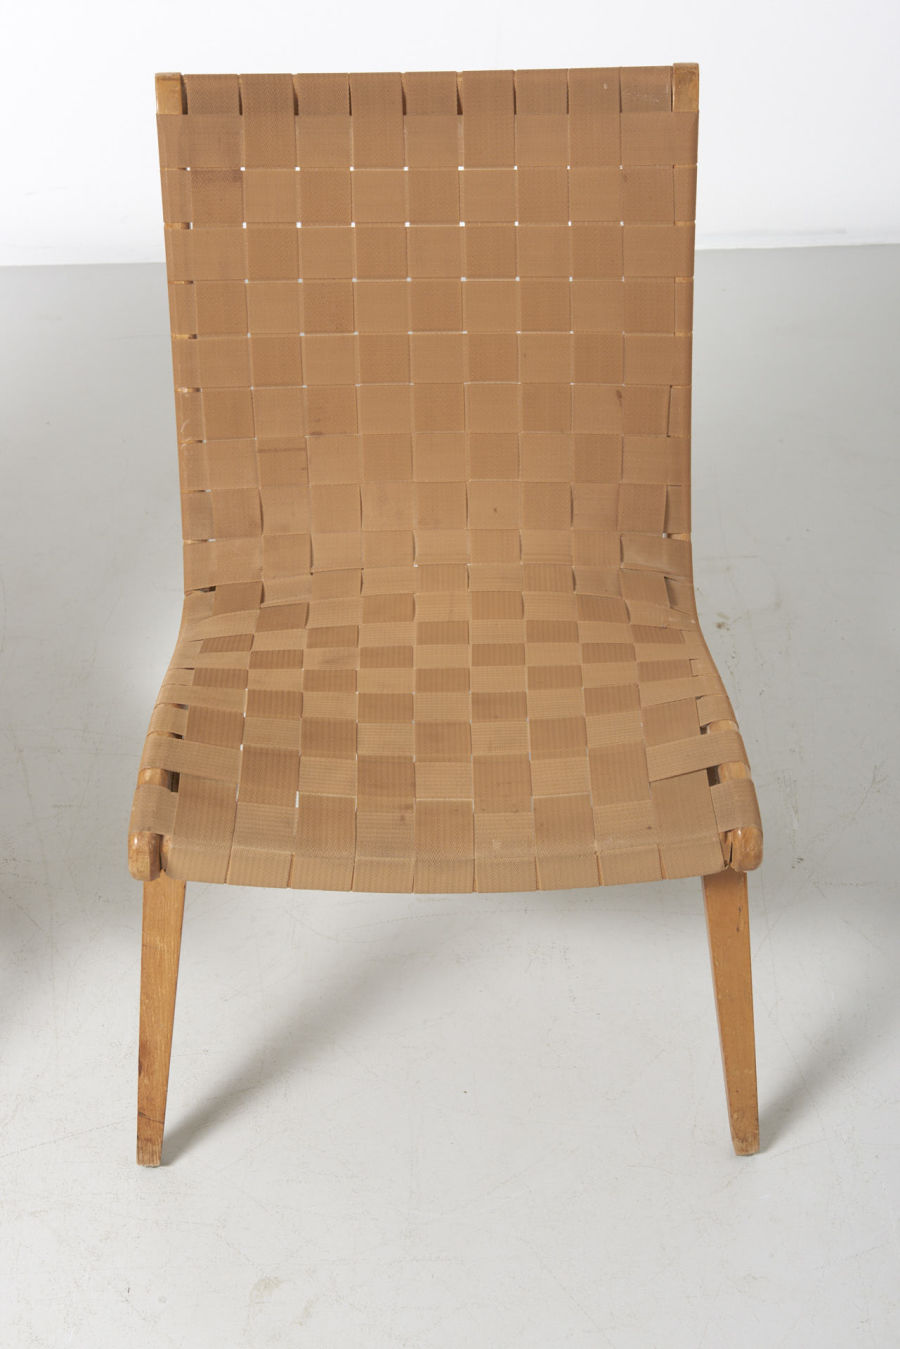 modestfurniture-vintage-1881-jens-risom-easy-chairs-knoll-beige02